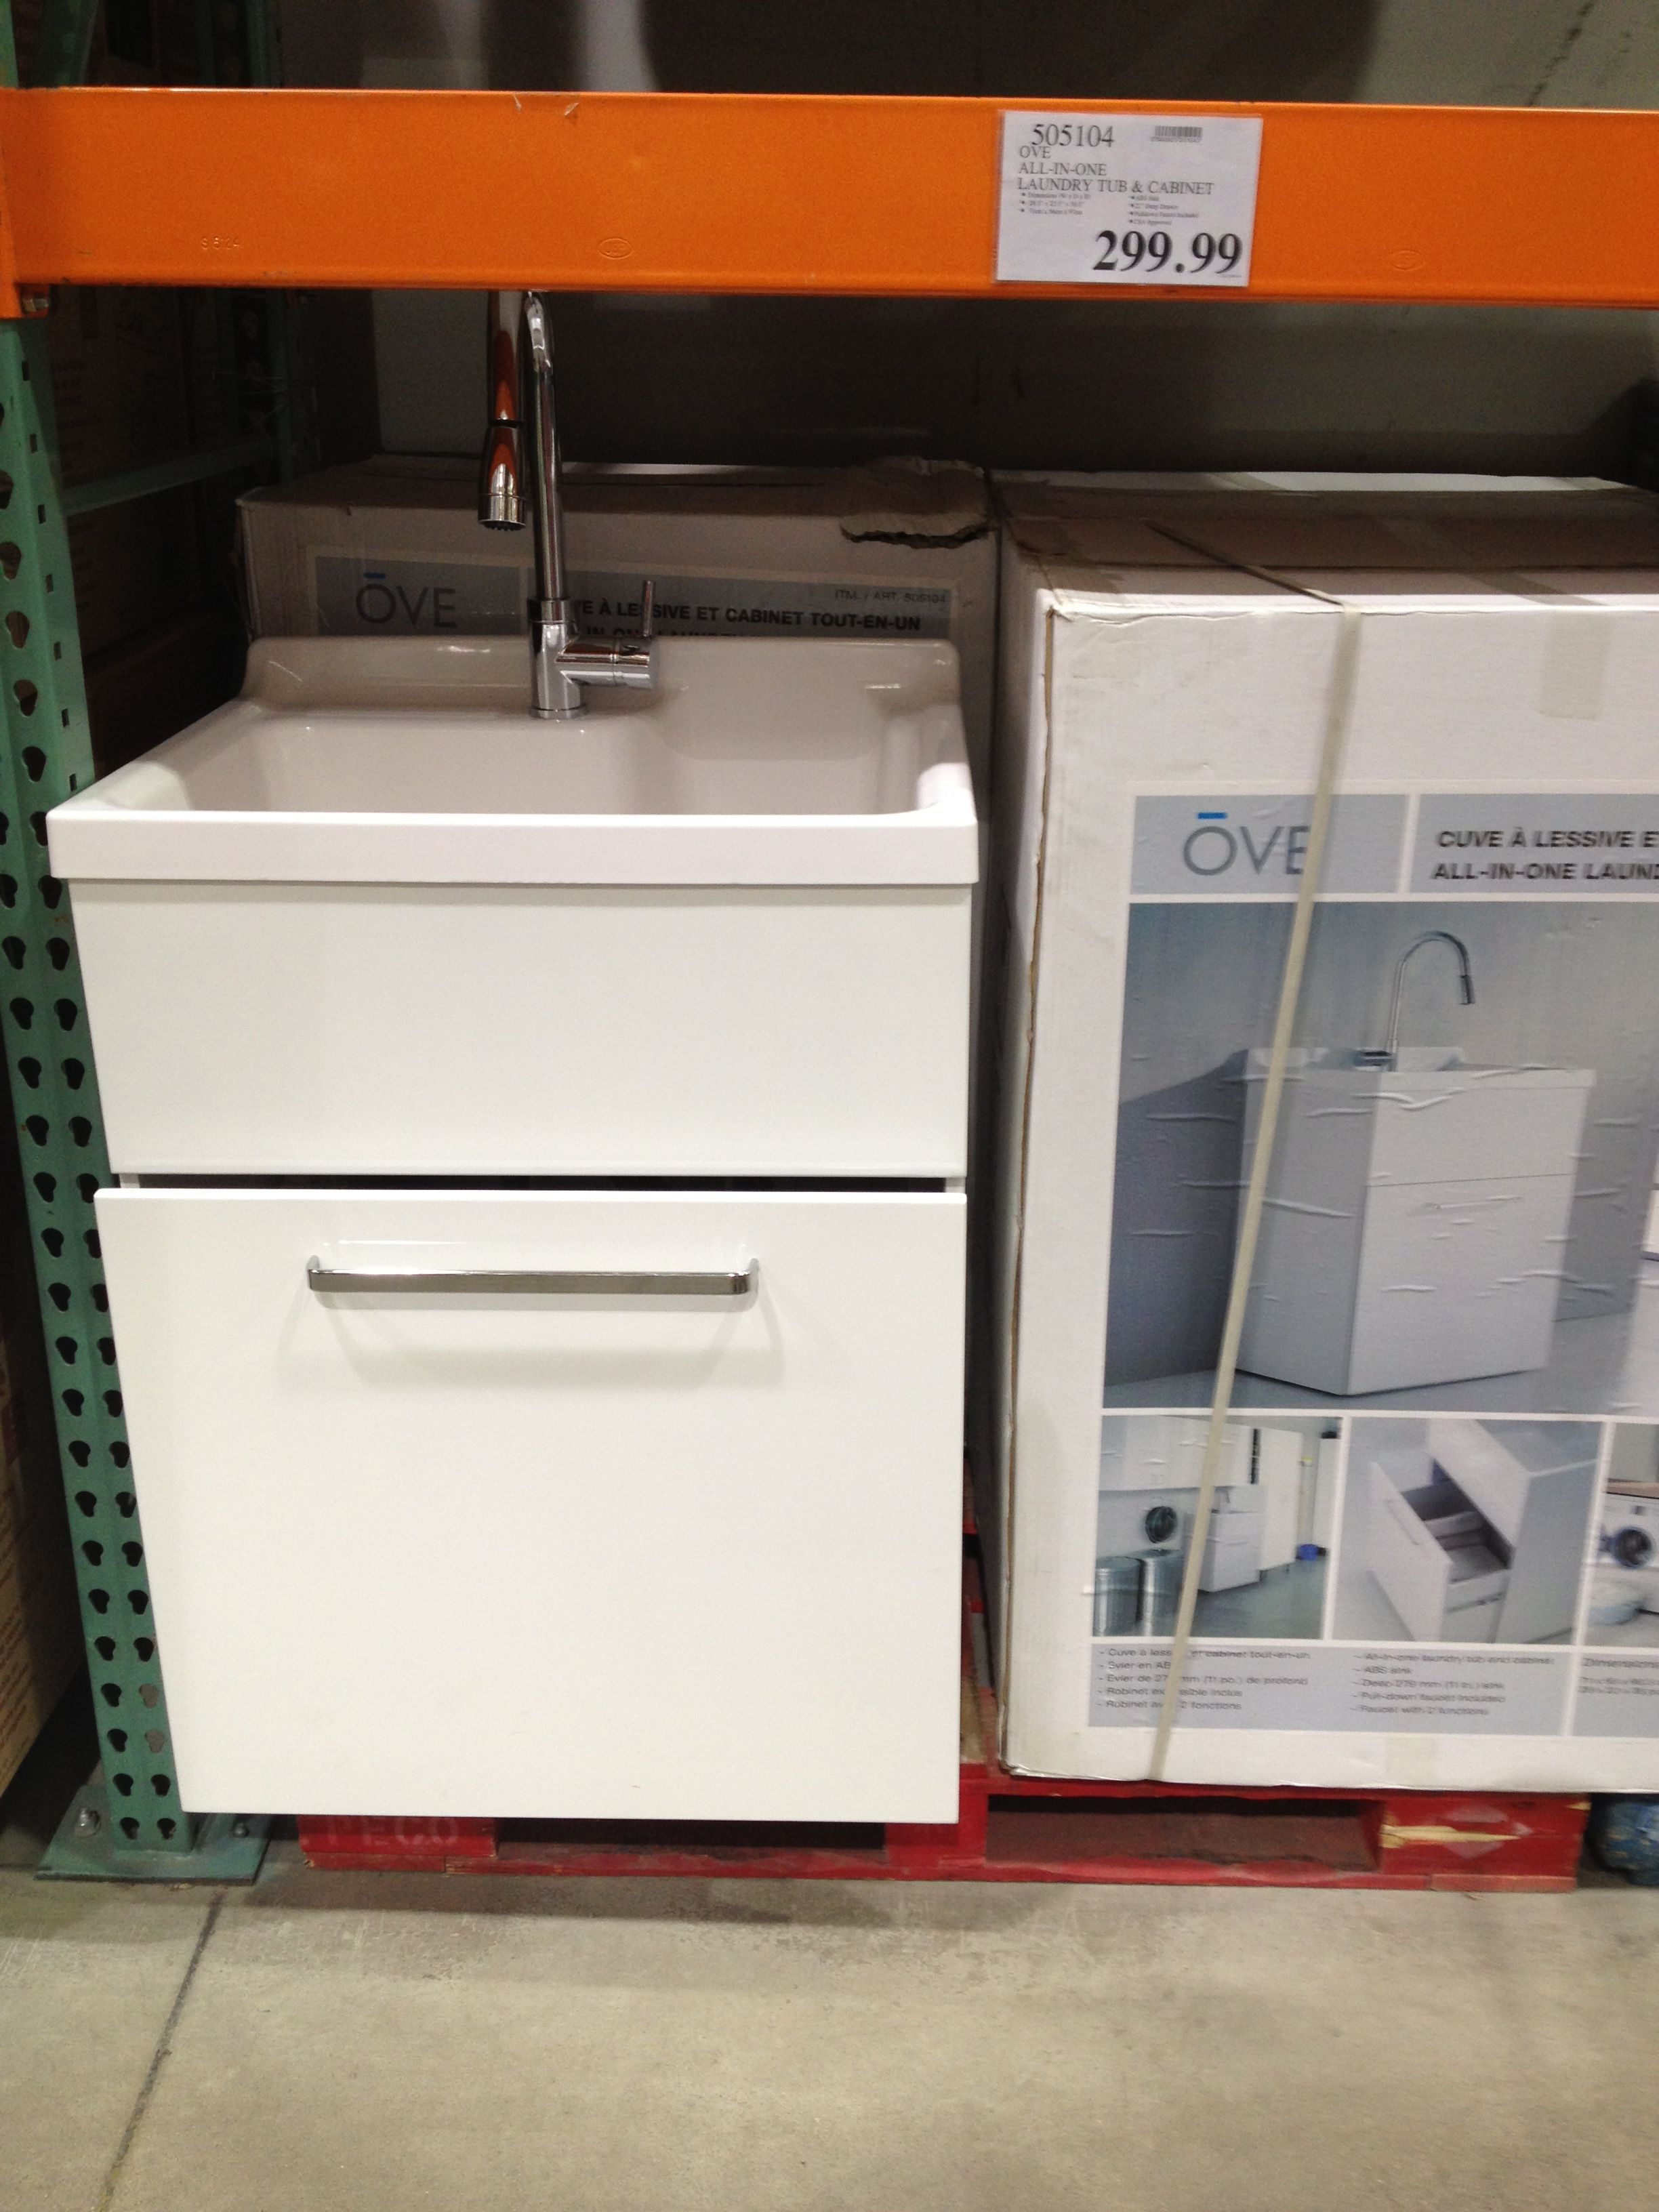 Costco 299 Utility Sink For Garage Bathroom Not First Choice